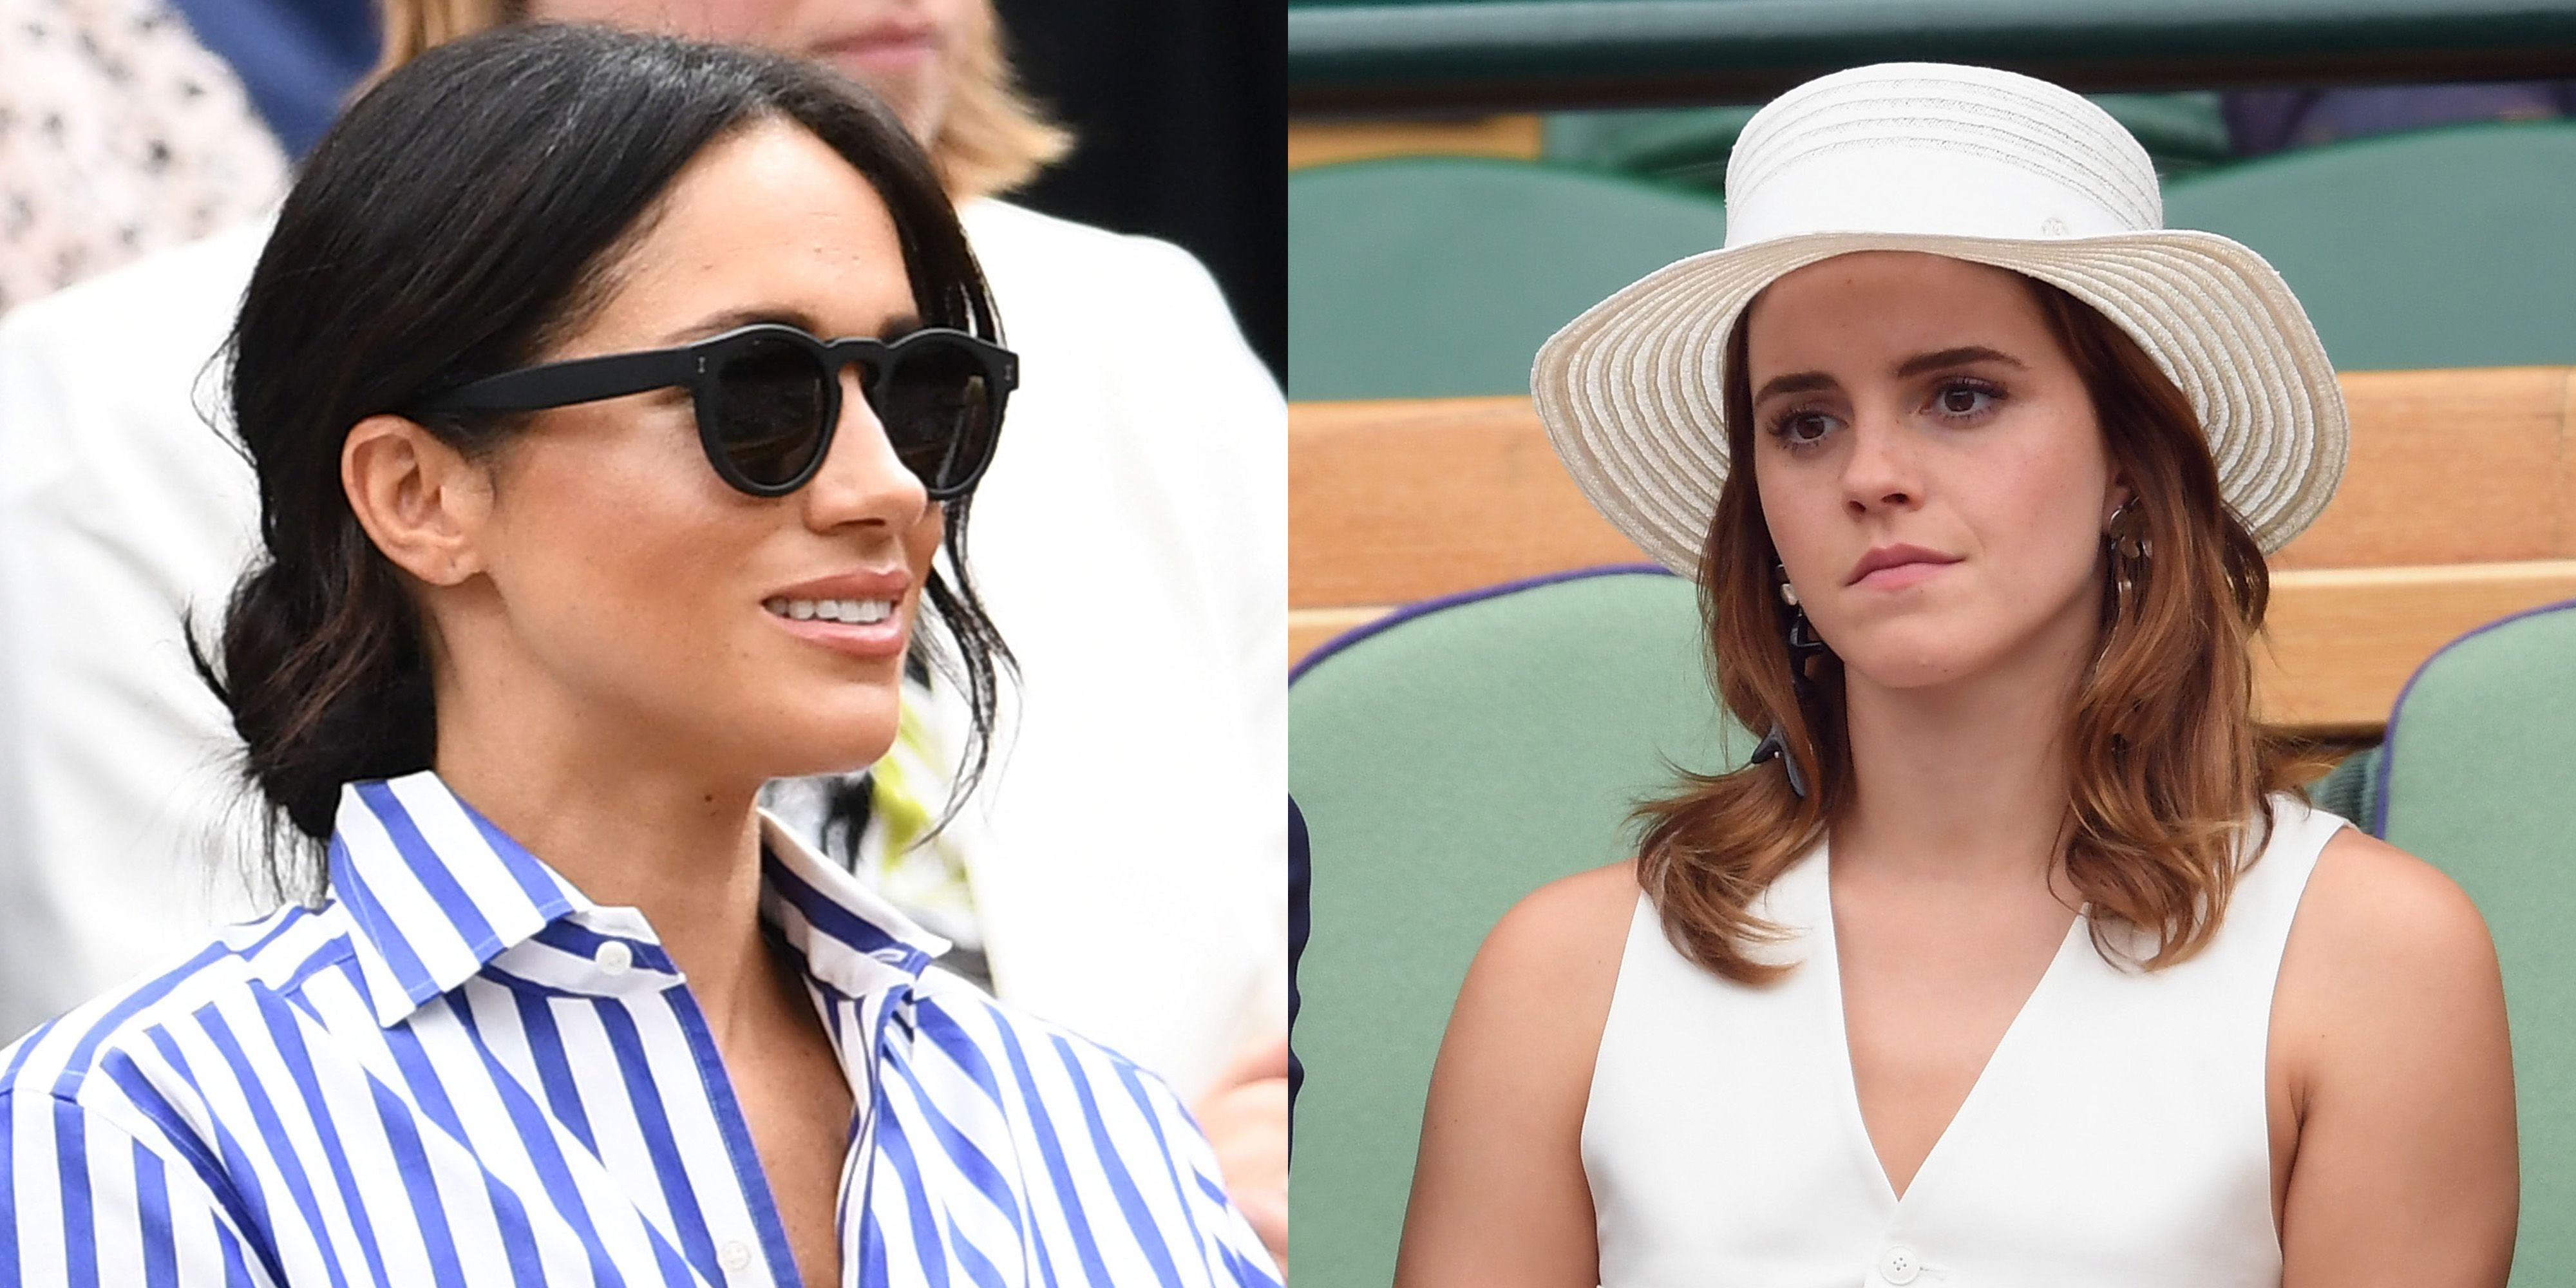 meghan markle and emma watson at wimbledon - meghan markle emma